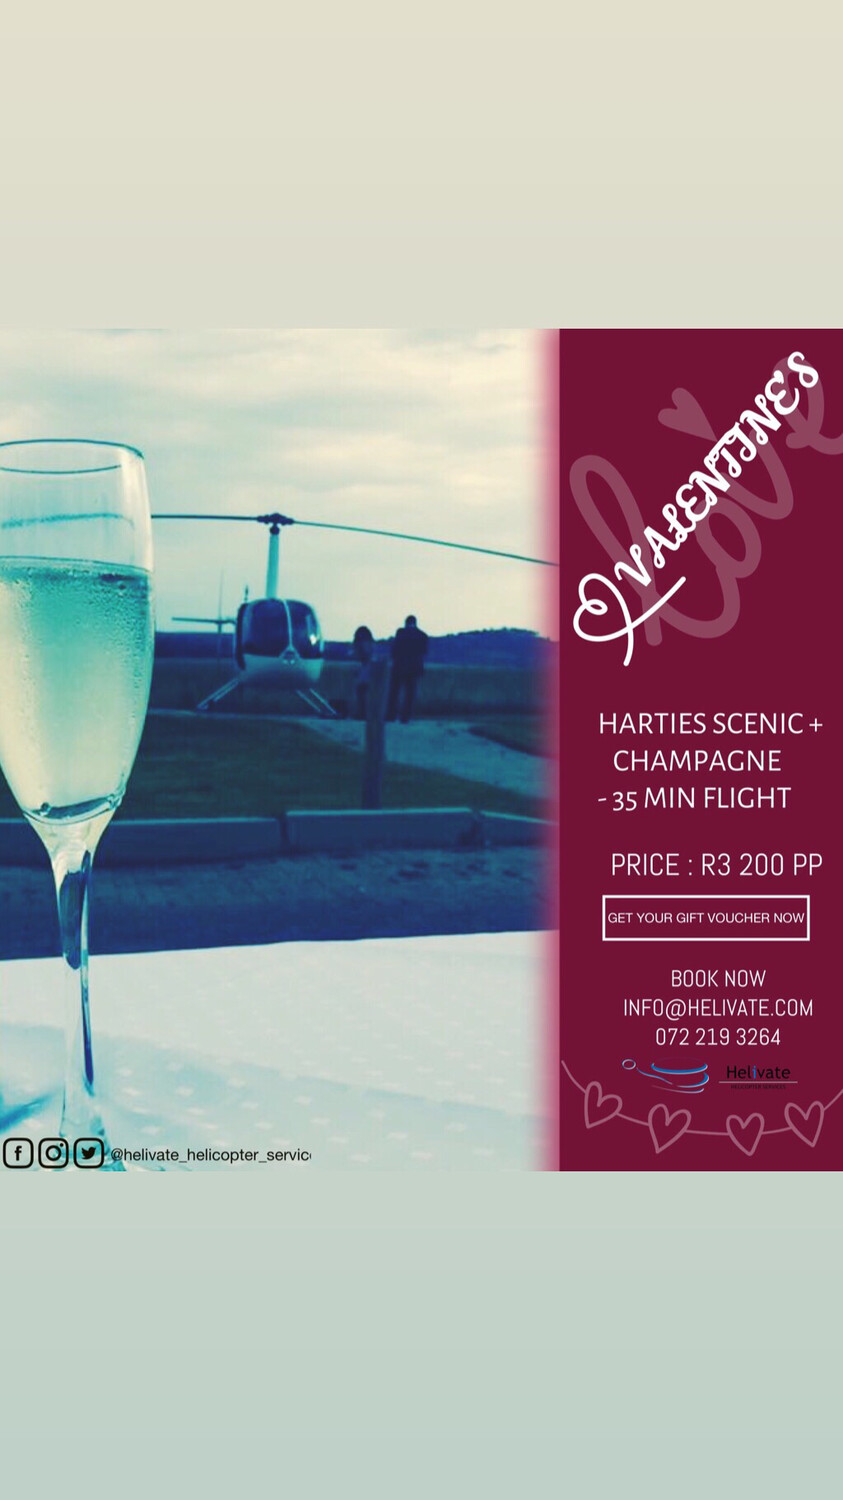 Valentine's Harties Scenic Flight + Champagne